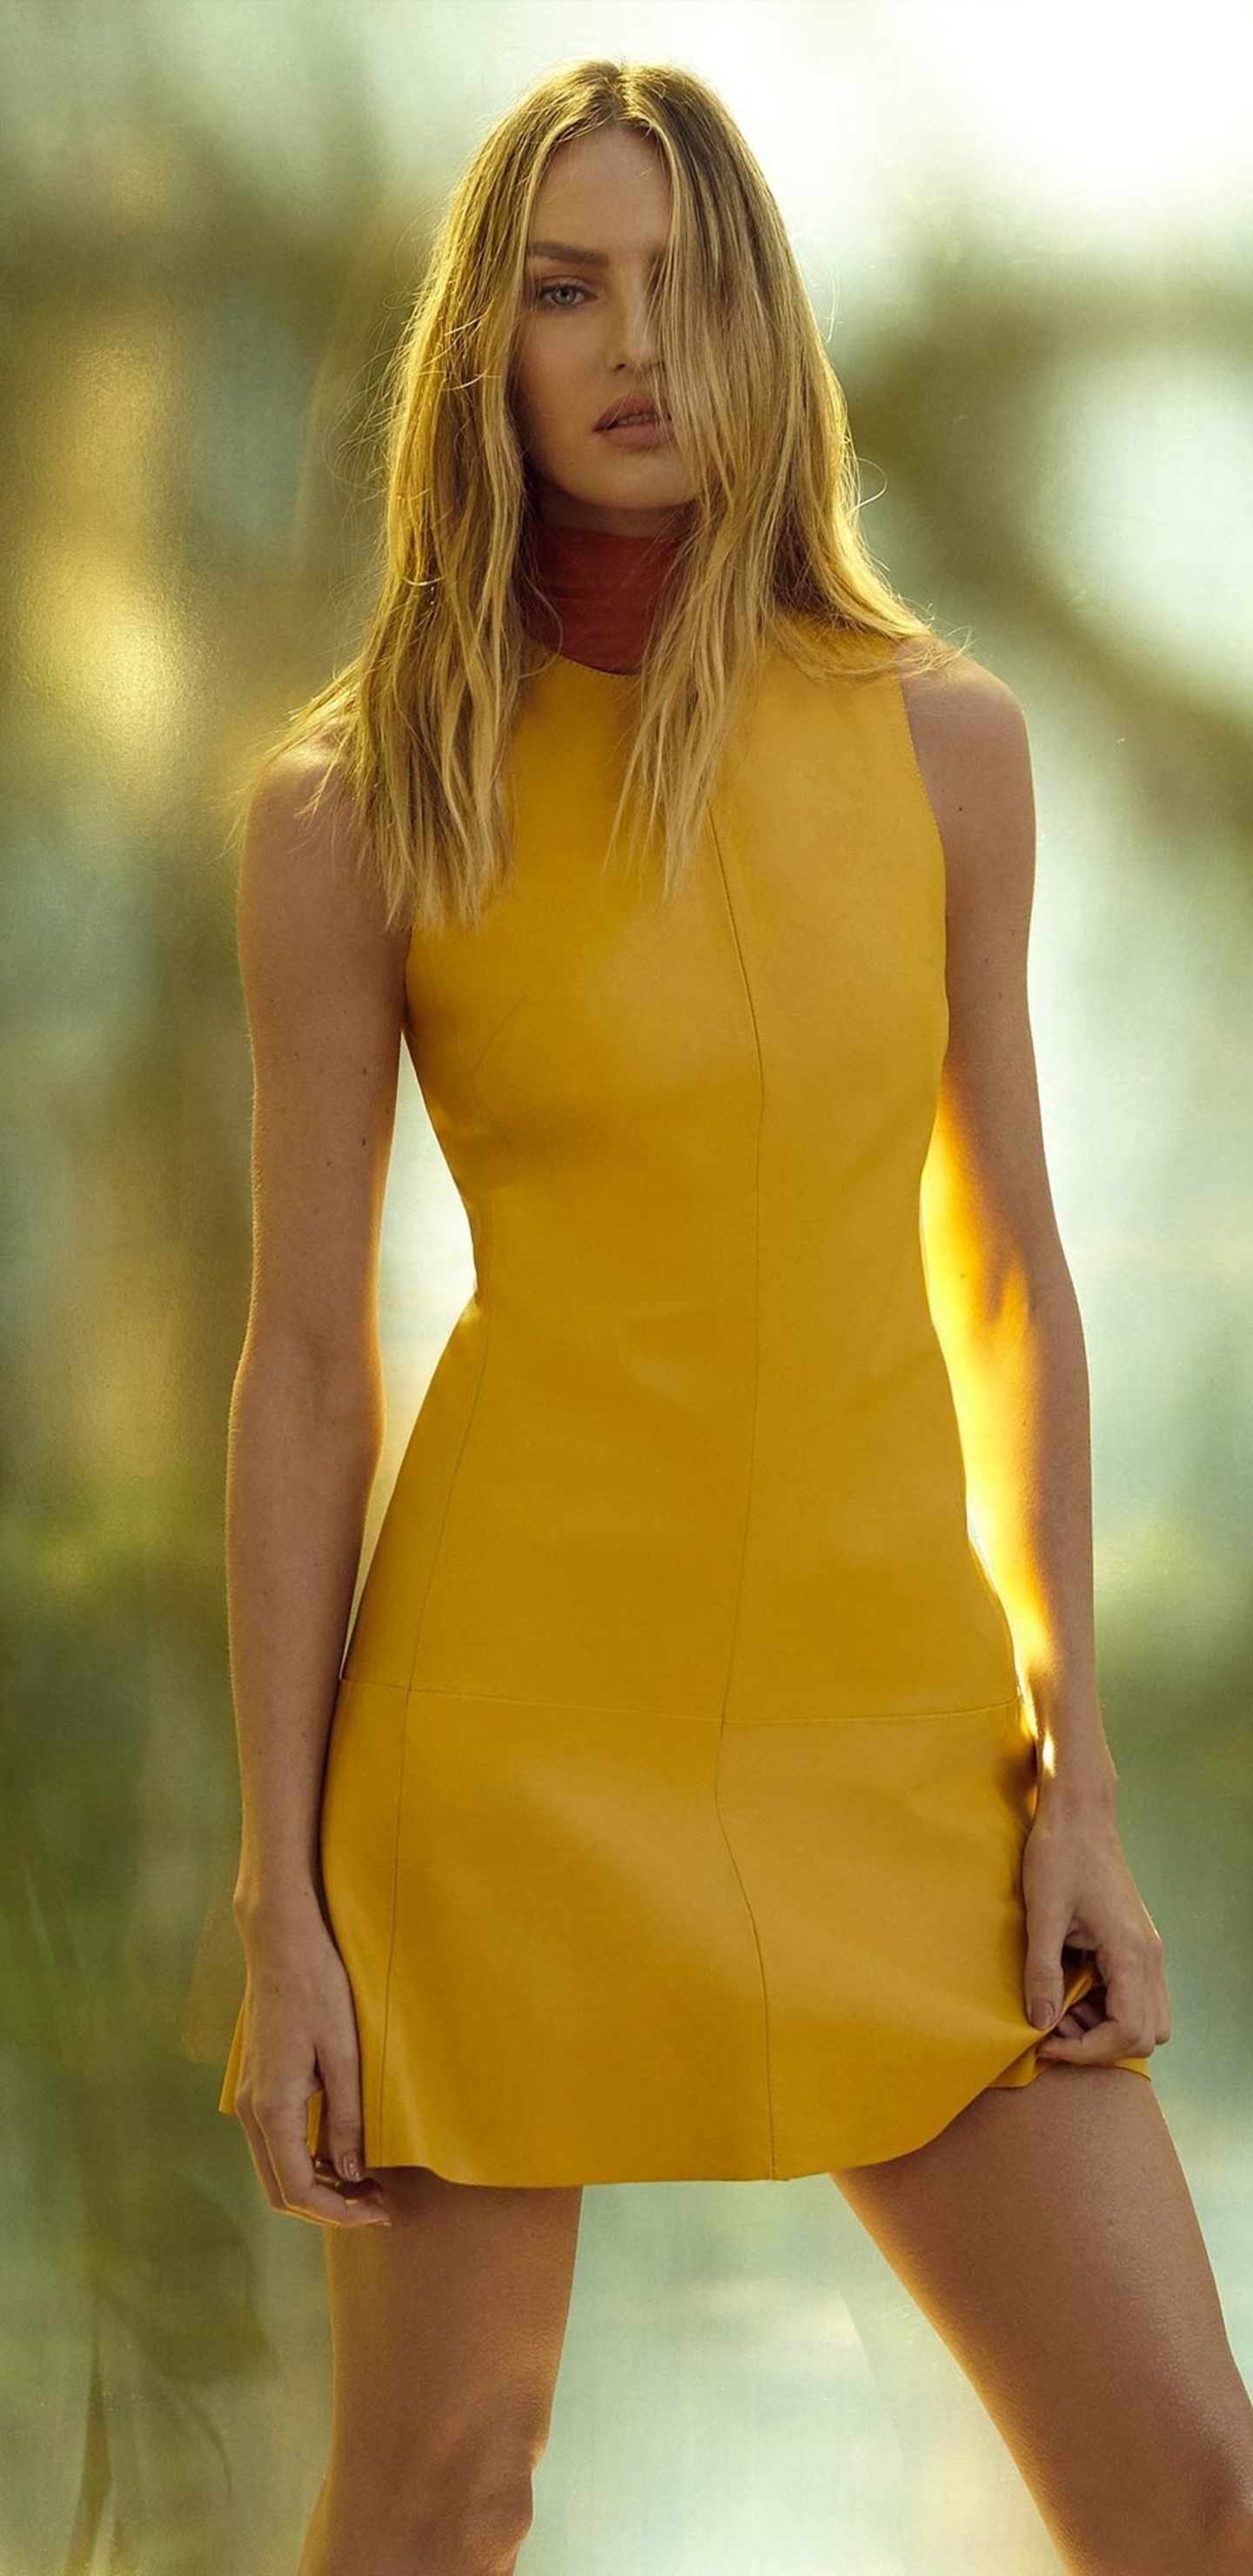 1440x2960 Candice Swanepoel Animales Summer Garden Campaign Samsung Galaxy Note 9 8 S9 S8 S8 Qhd Hd 4k Wallpapers Images Backgrounds Photos And Pictures